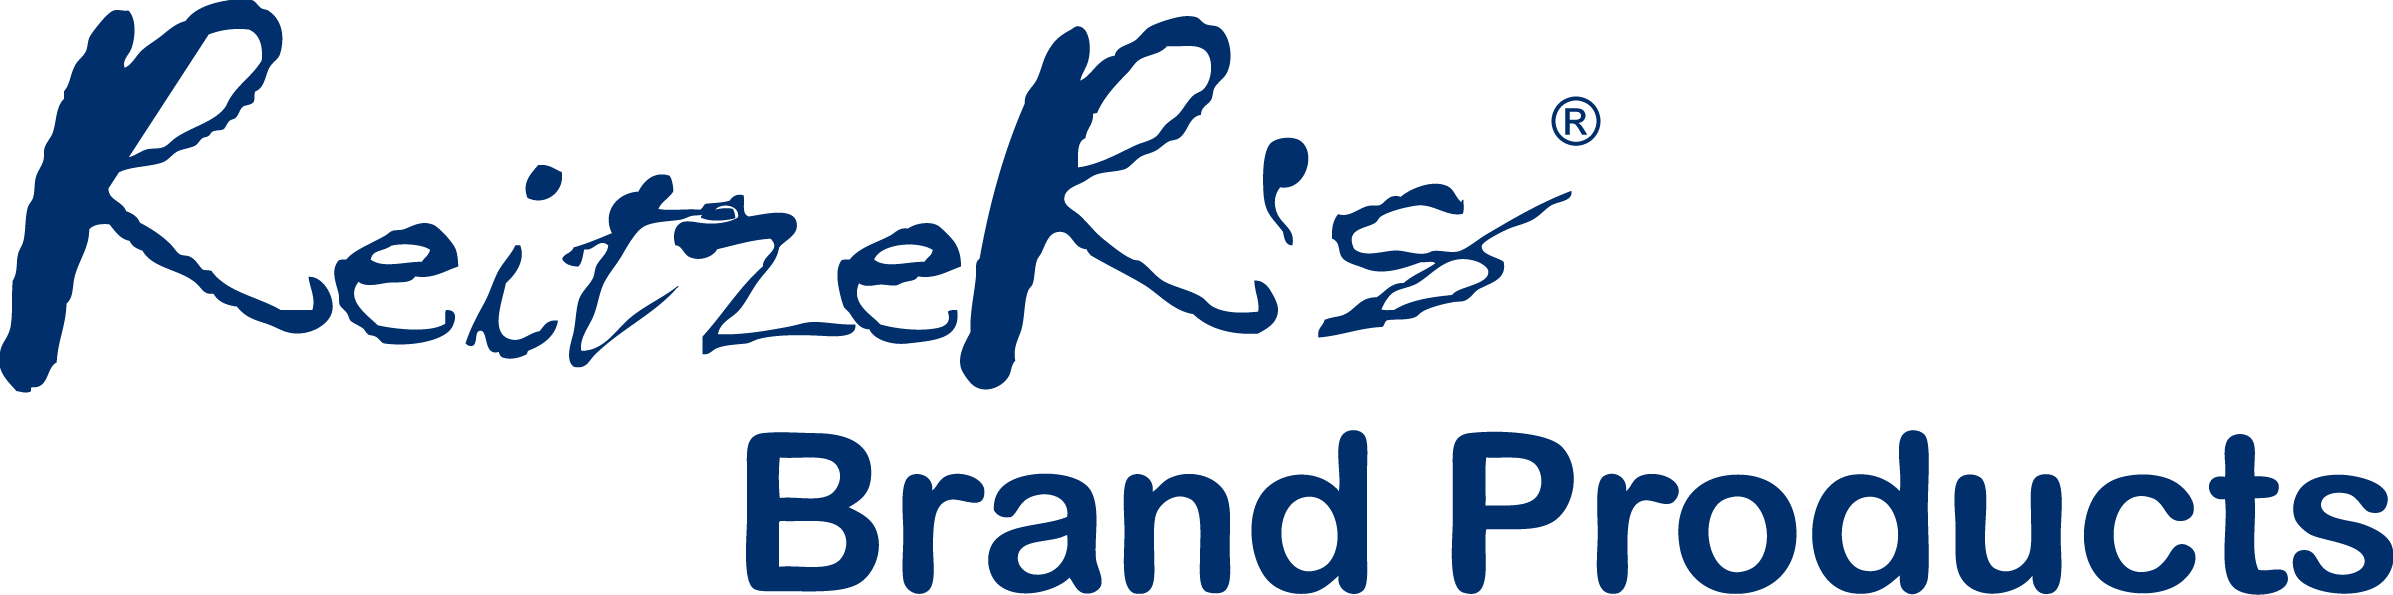 Reitzer Brand Products